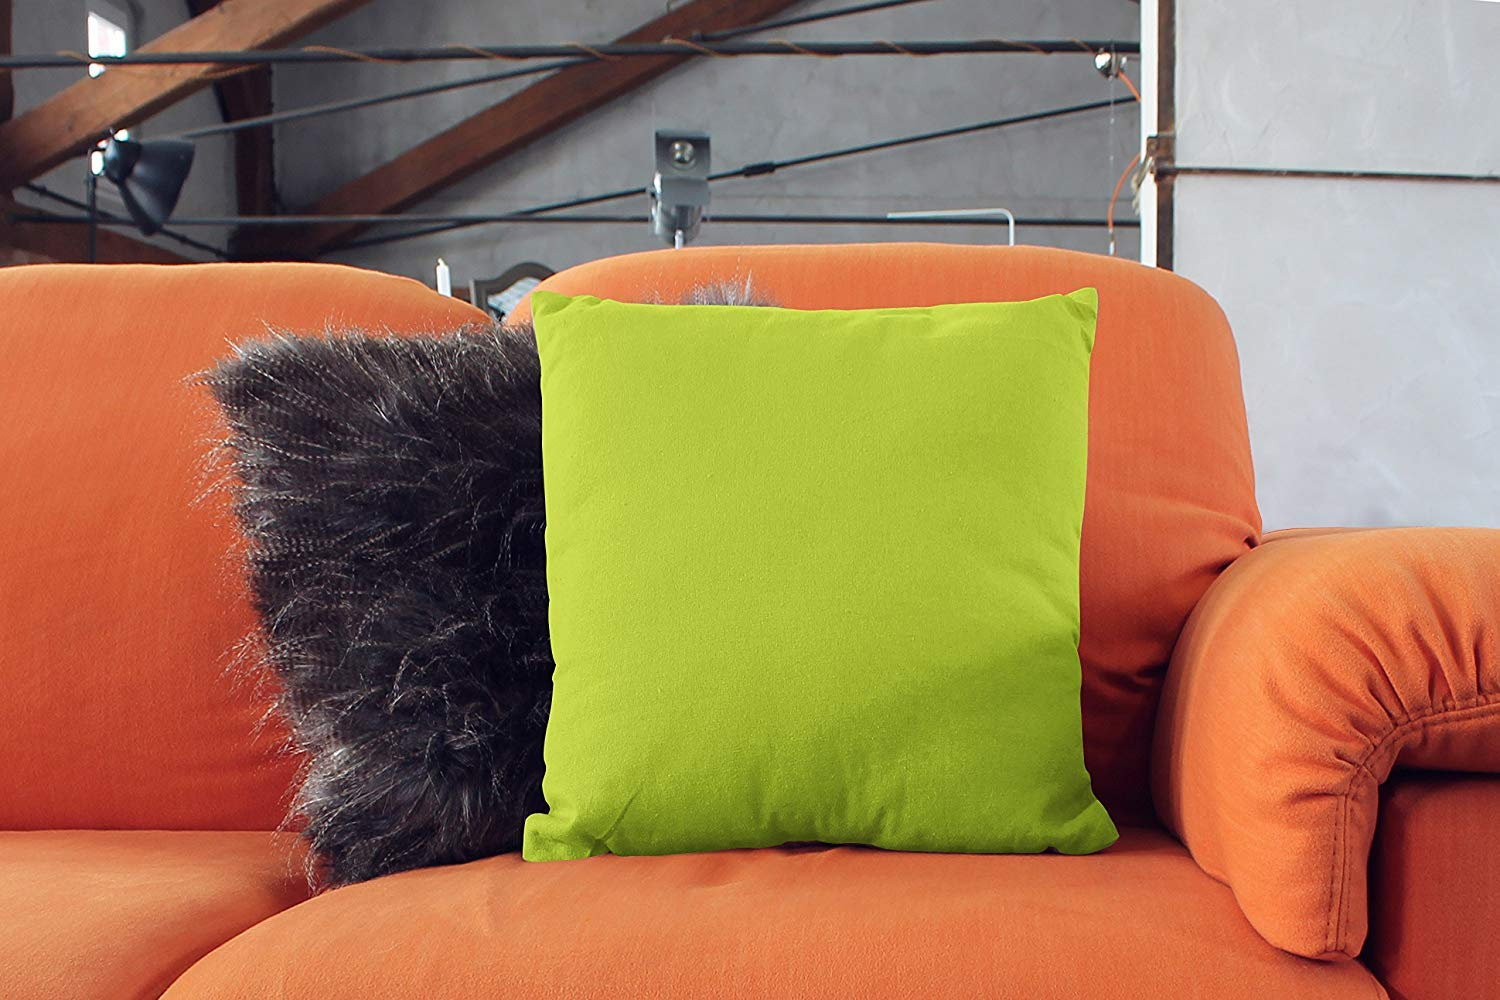 Encasa Homes Throw Cushion Cover 2pc Set - Lime Green - 18 x 18 inch Solid Dyed Cotton Canvas Square Accent Decorative Pillow Case for Couch Sofa ...